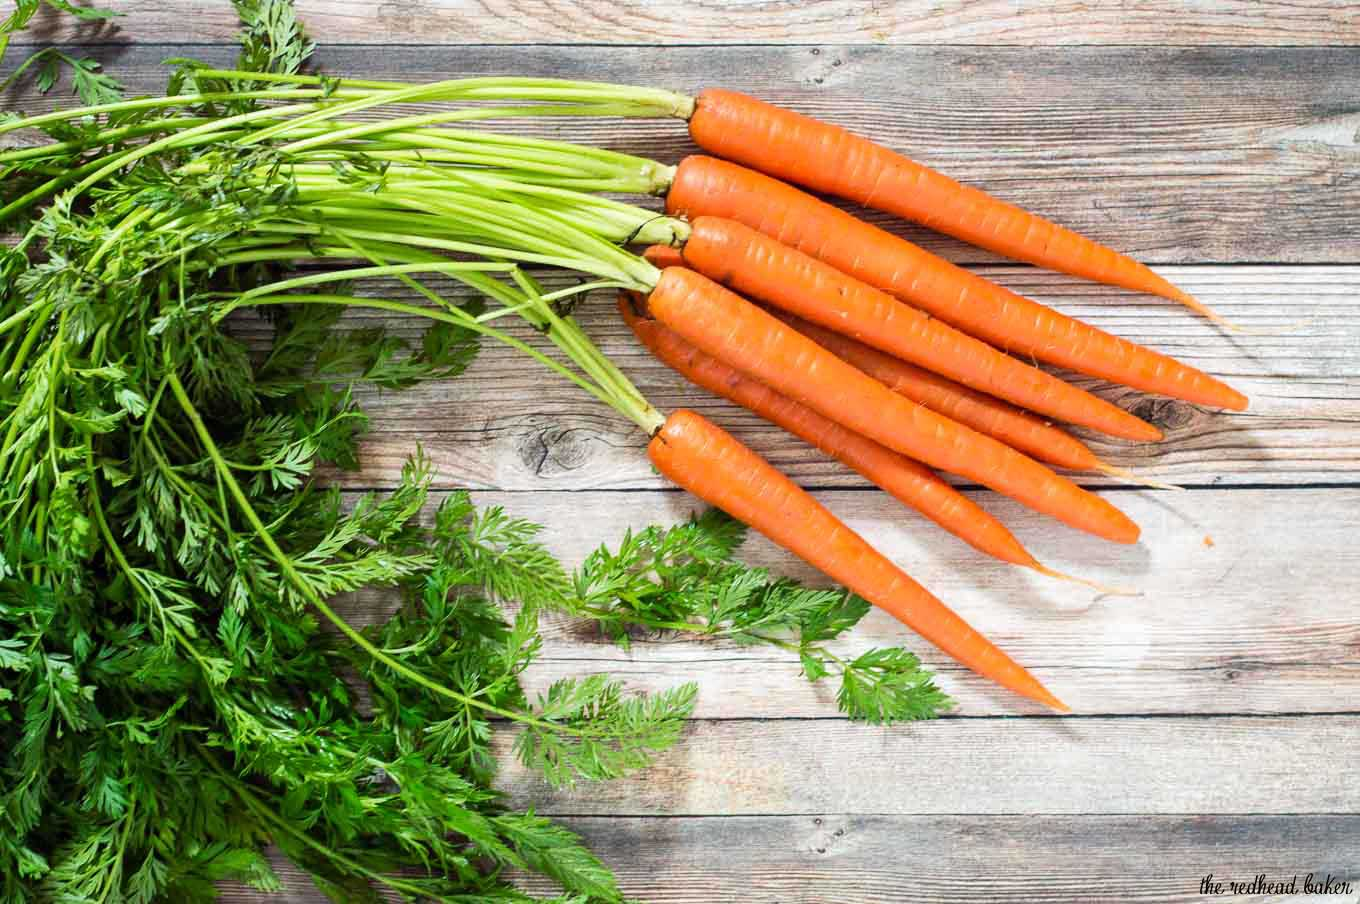 Butter-braised spring carrots are a simple yet flavorful side dish. A garnish of fresh basil complements the sweeter carrots perfectly.